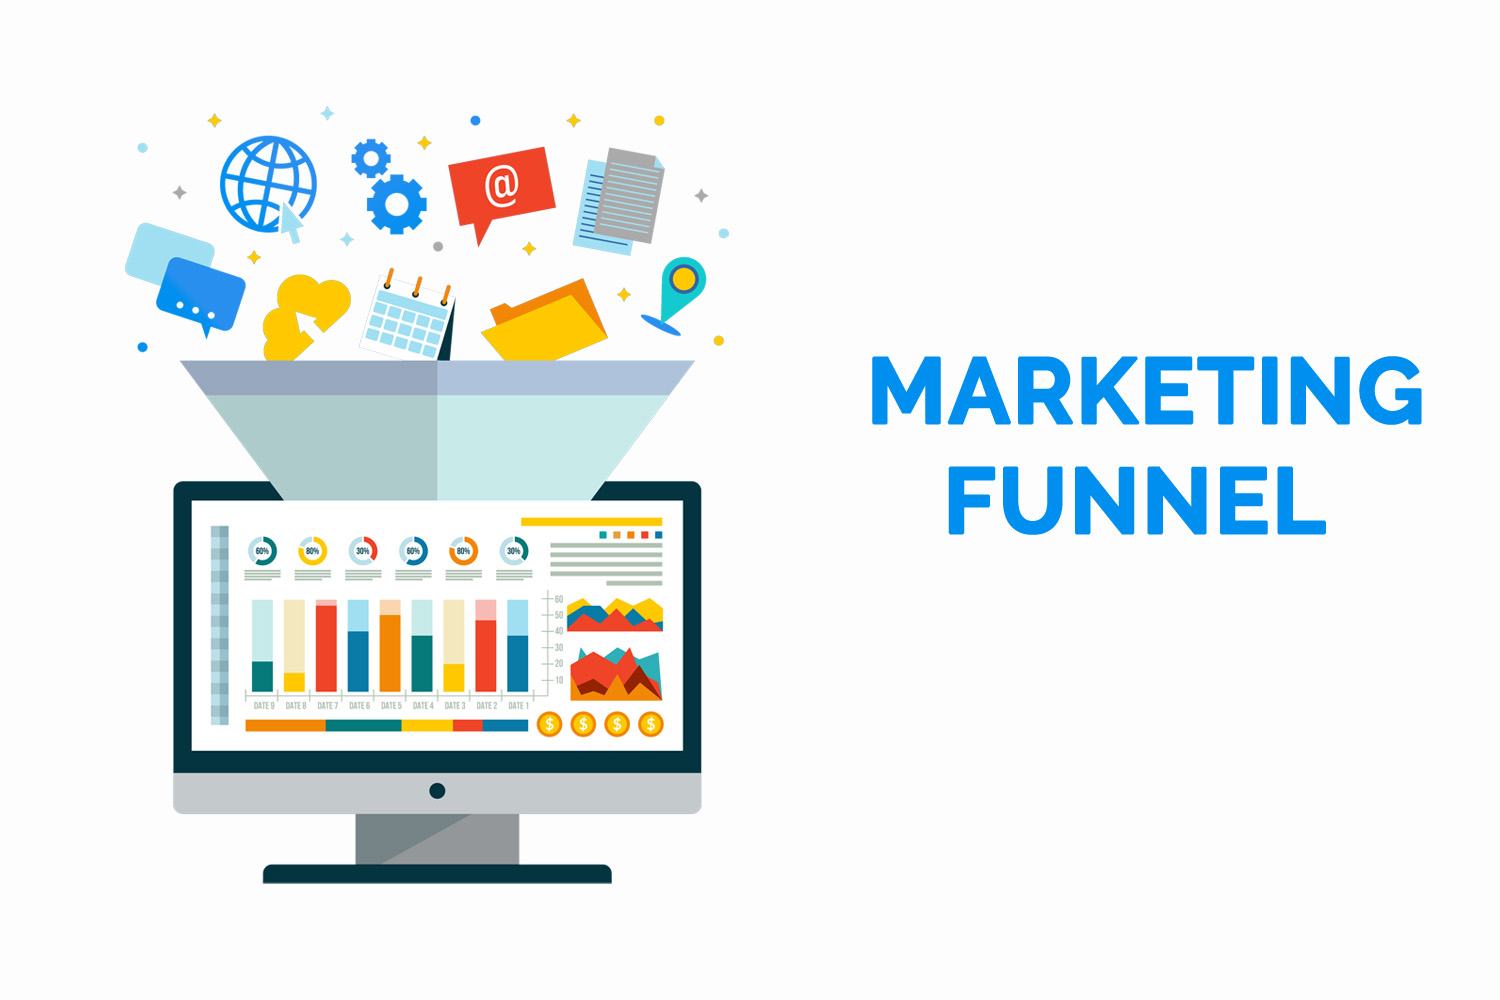 Funnel Marketing - Web Marketing - Online Marketing - AGENTIE MARKETING TIMISOARA